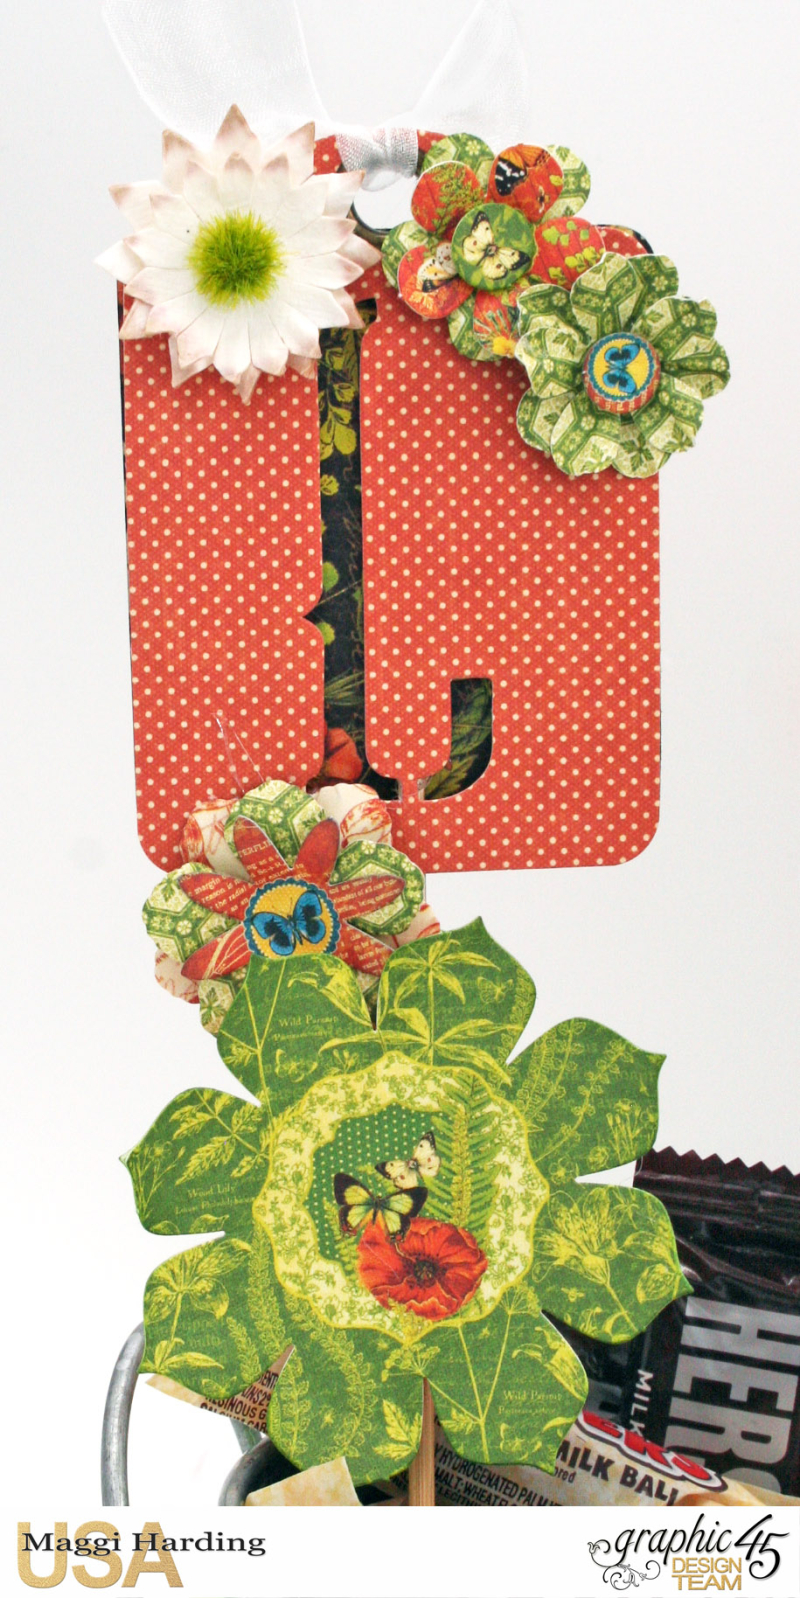 Love Candy Bucket, Nature Sketchbook, Maggi Harding, Graphic 45 (4)